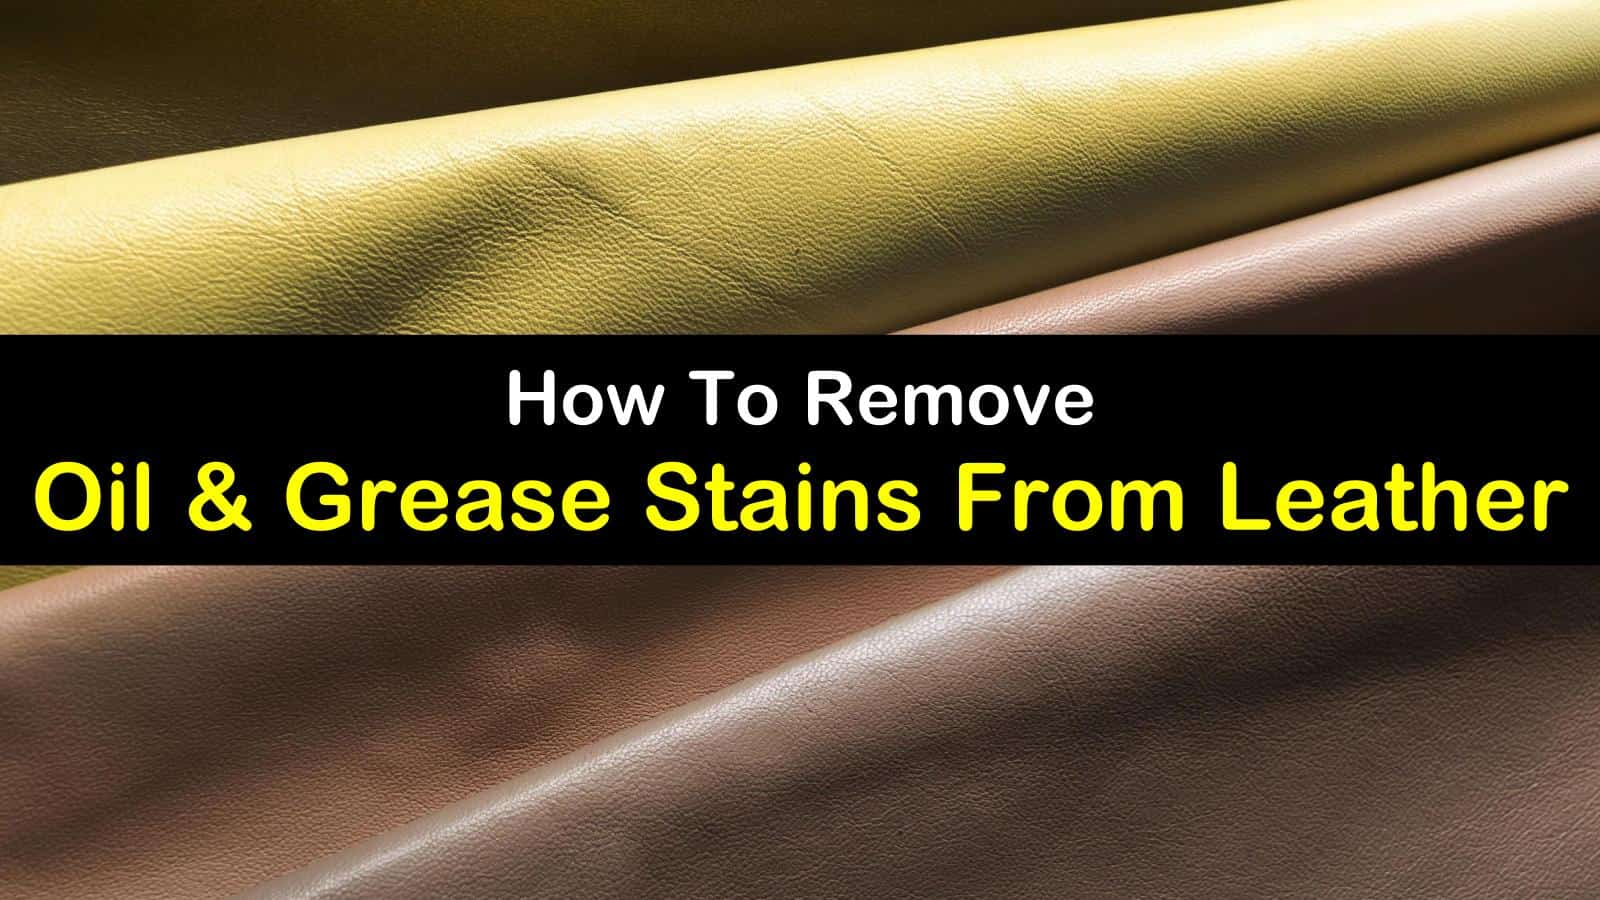 Wondrous Oil Stain On Leather How To Remove Oil And Grease Stains Caraccident5 Cool Chair Designs And Ideas Caraccident5Info